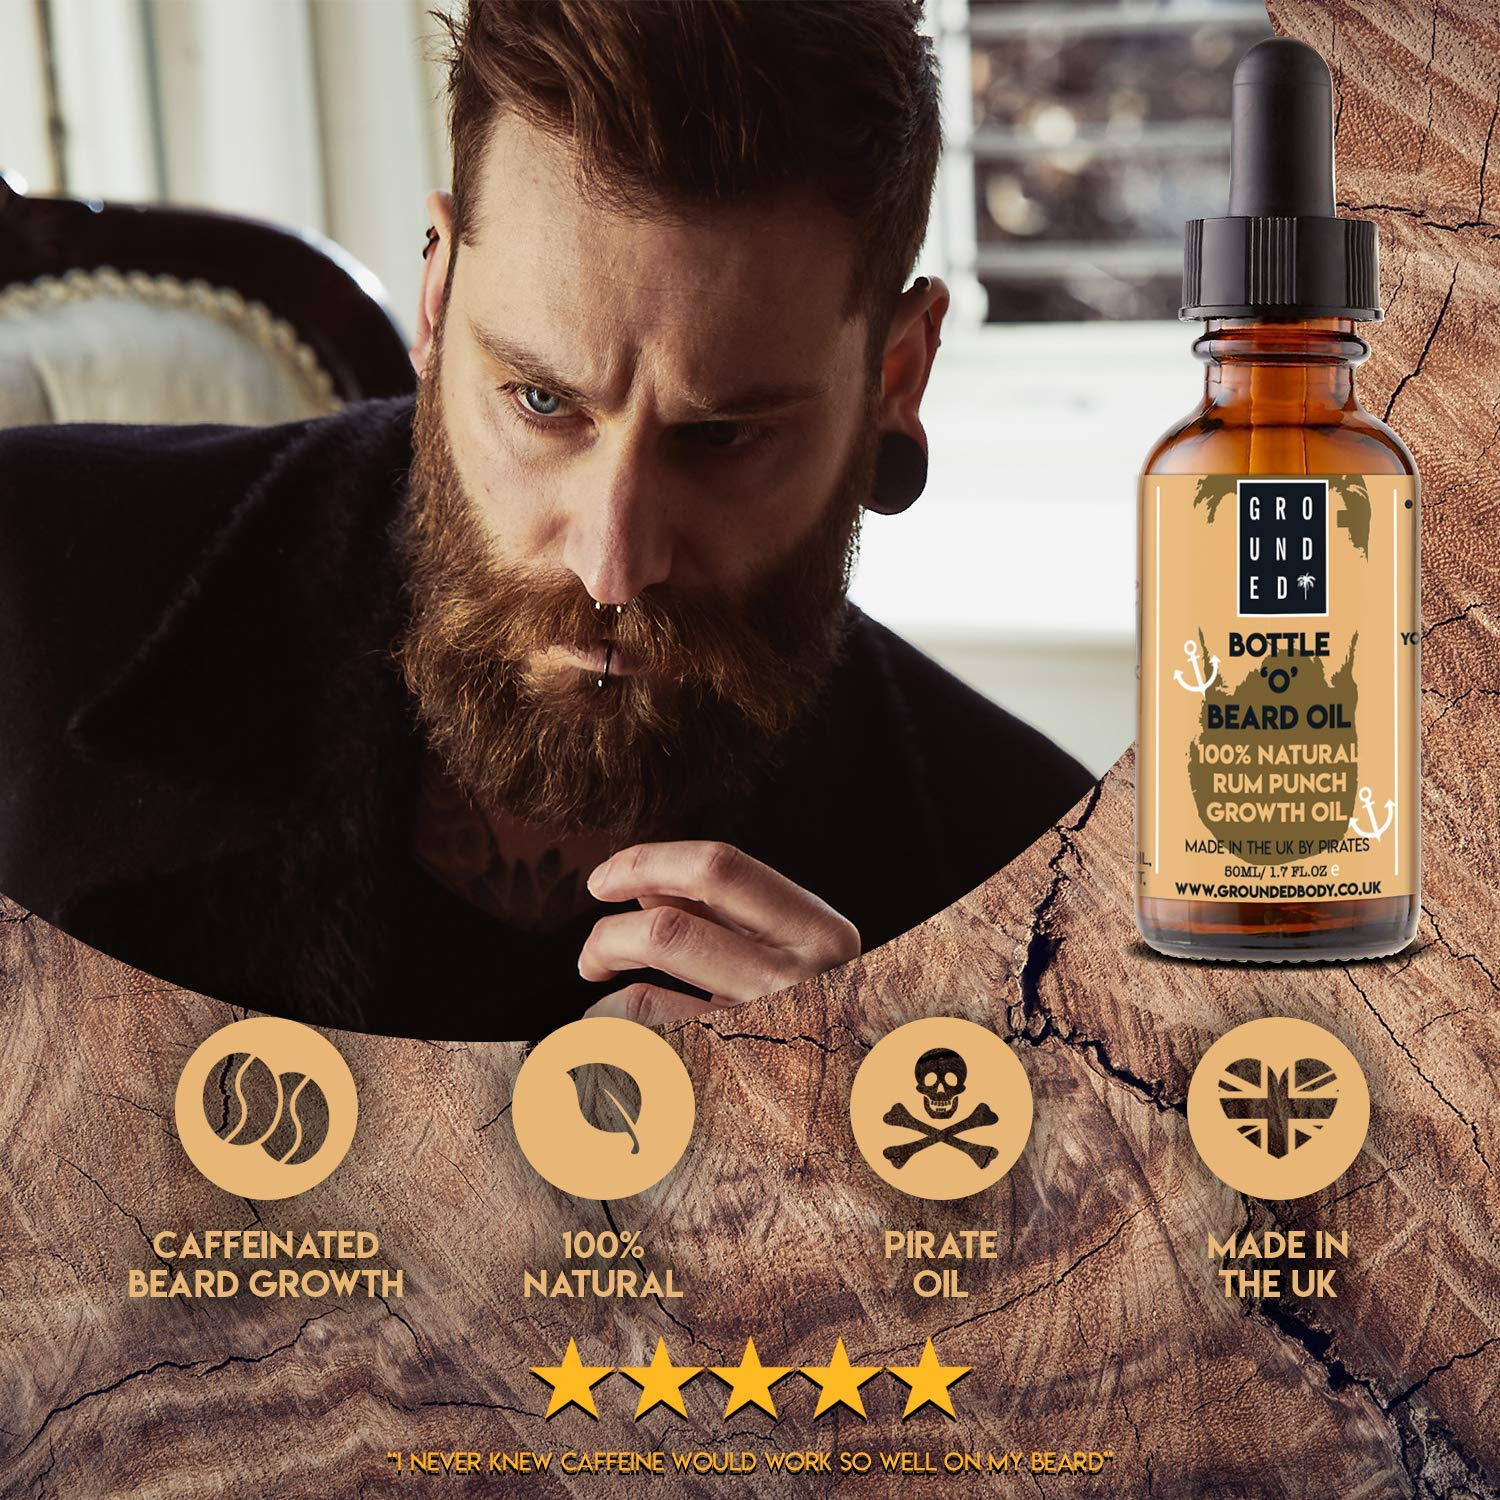 Premium Caffeinated Bottle 'O' Beard Oil for Growth & Conditioning By  Grounded - 50ml Larger Size, All Natural Rum Punch Scent- Made By Pirates  in The